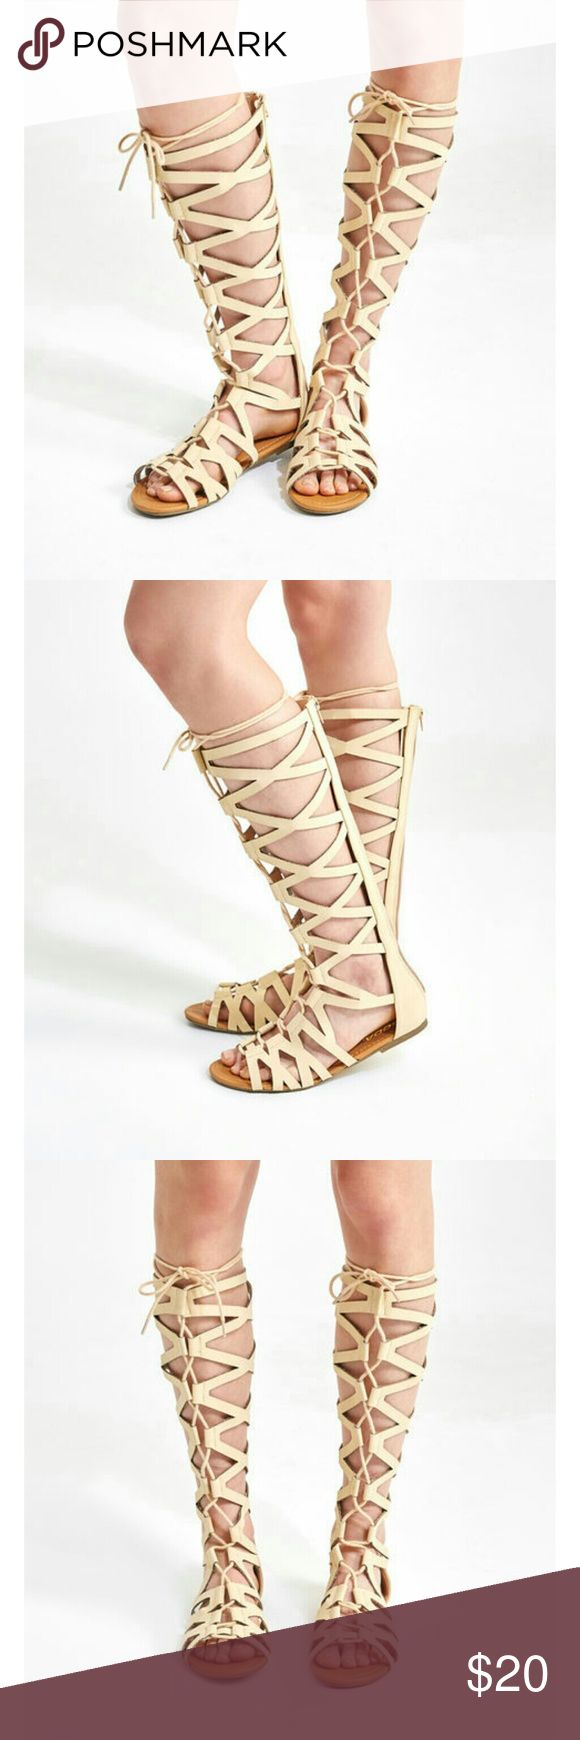 Women's gladiator shoes Women's gladiator shoes in the color Beige. They have a zipper back Shoes Sandals